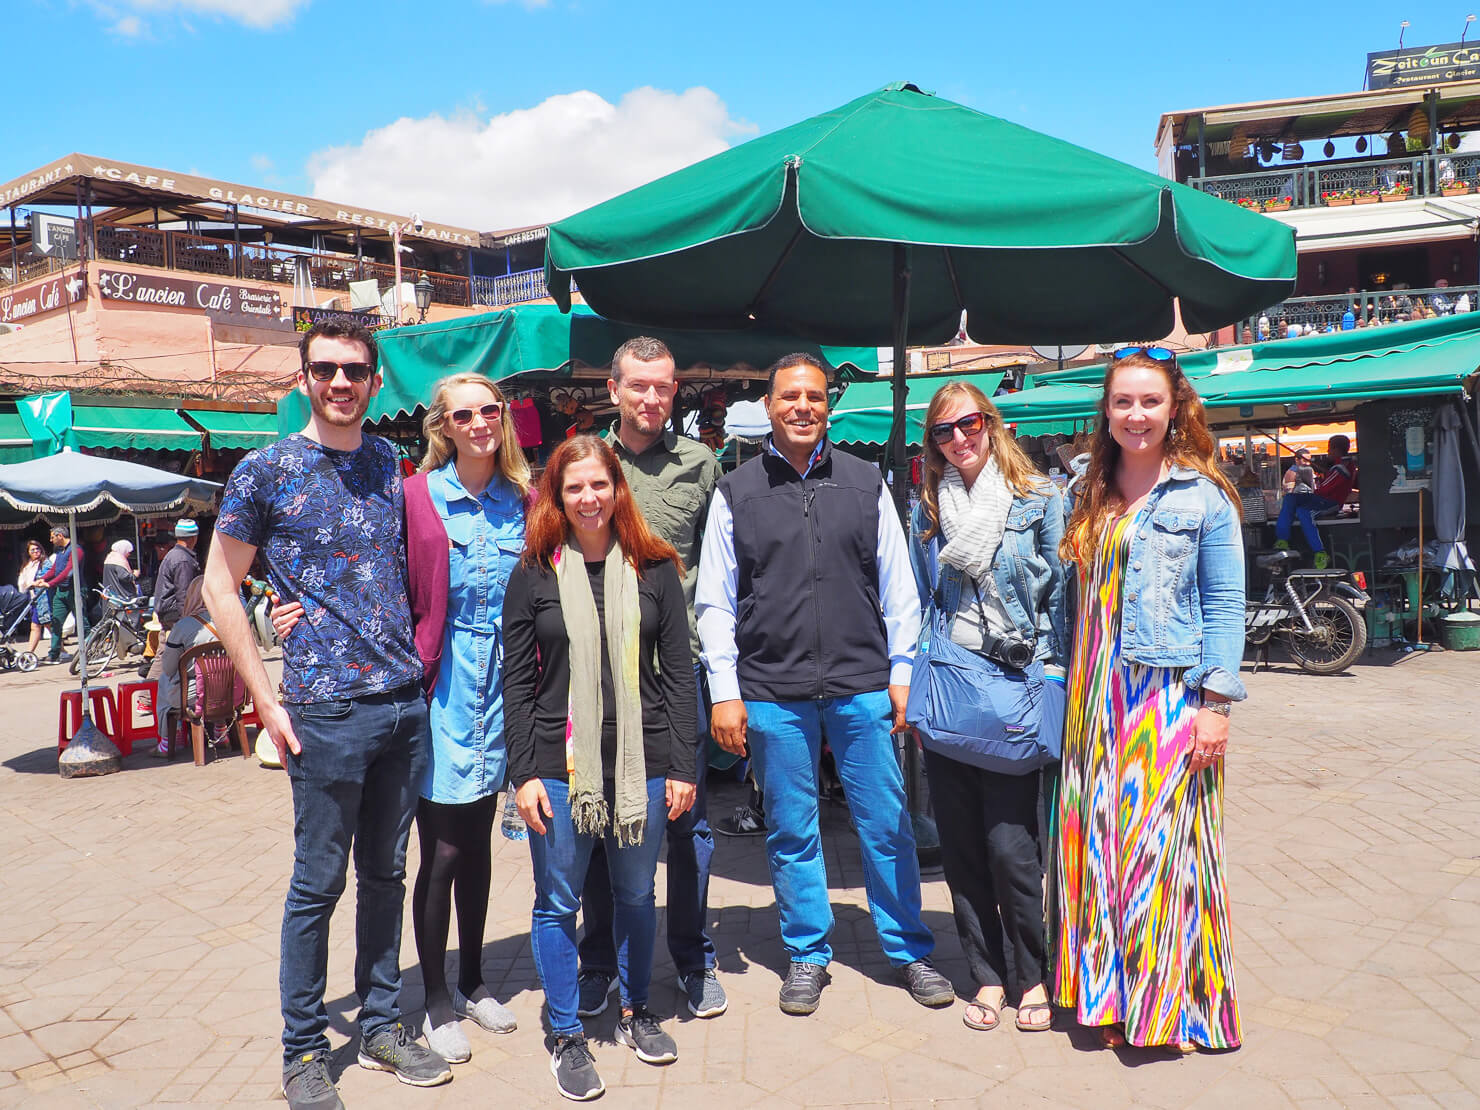 Marrakech Walking Tour - Marrakech By Locals - Marrakech Travel Tips